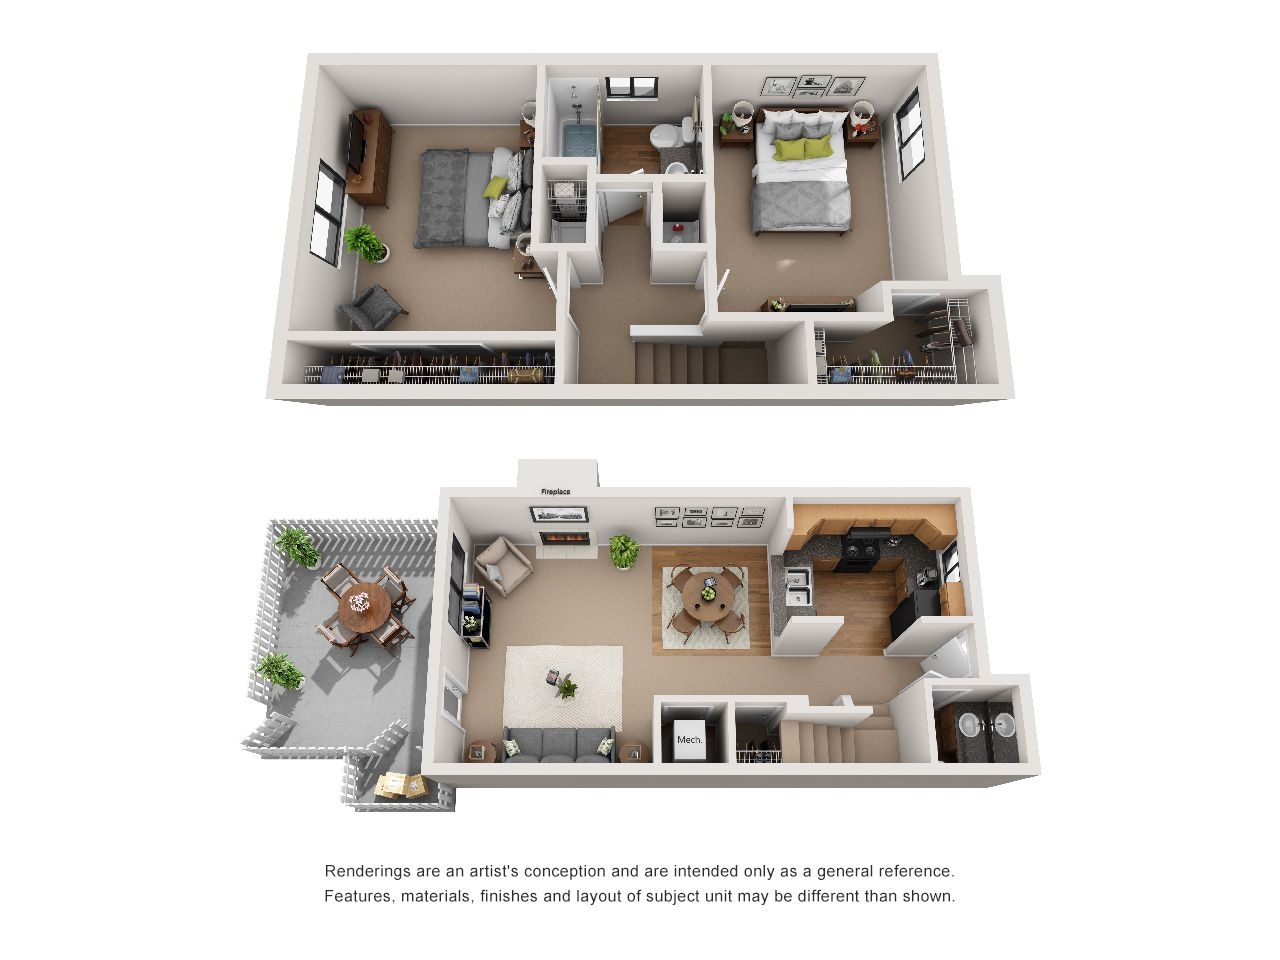 Pet Friendly Apartments In Indianapolis Indiana For Rent Indianapolis Indiana Apartment Steadfast Apartment Layout Sims House Design Small House Plans